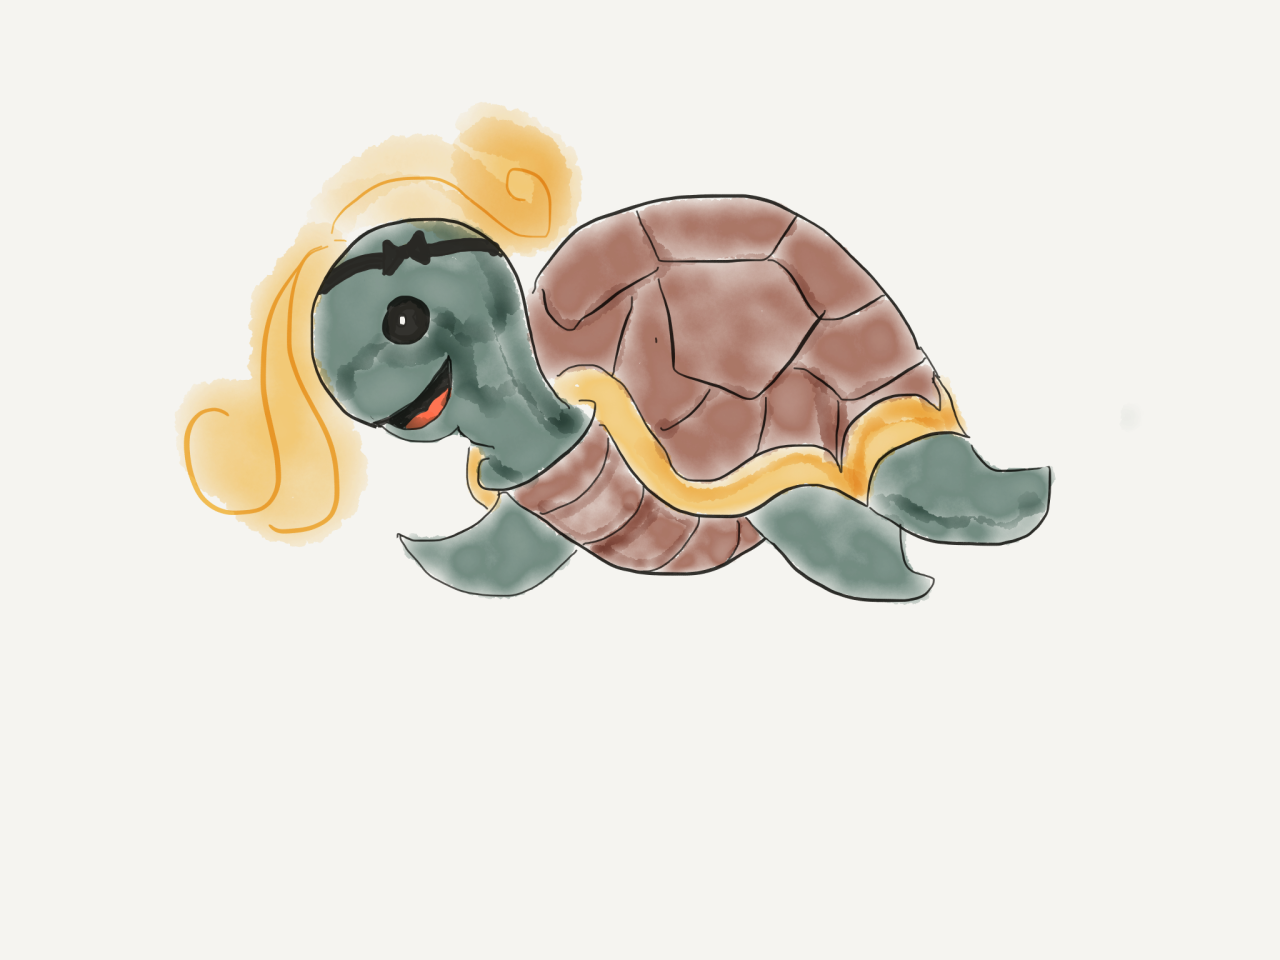 Lisa, the turtle with a blowout and a headband. Did we really talk about that in ep 121? I fear we did.